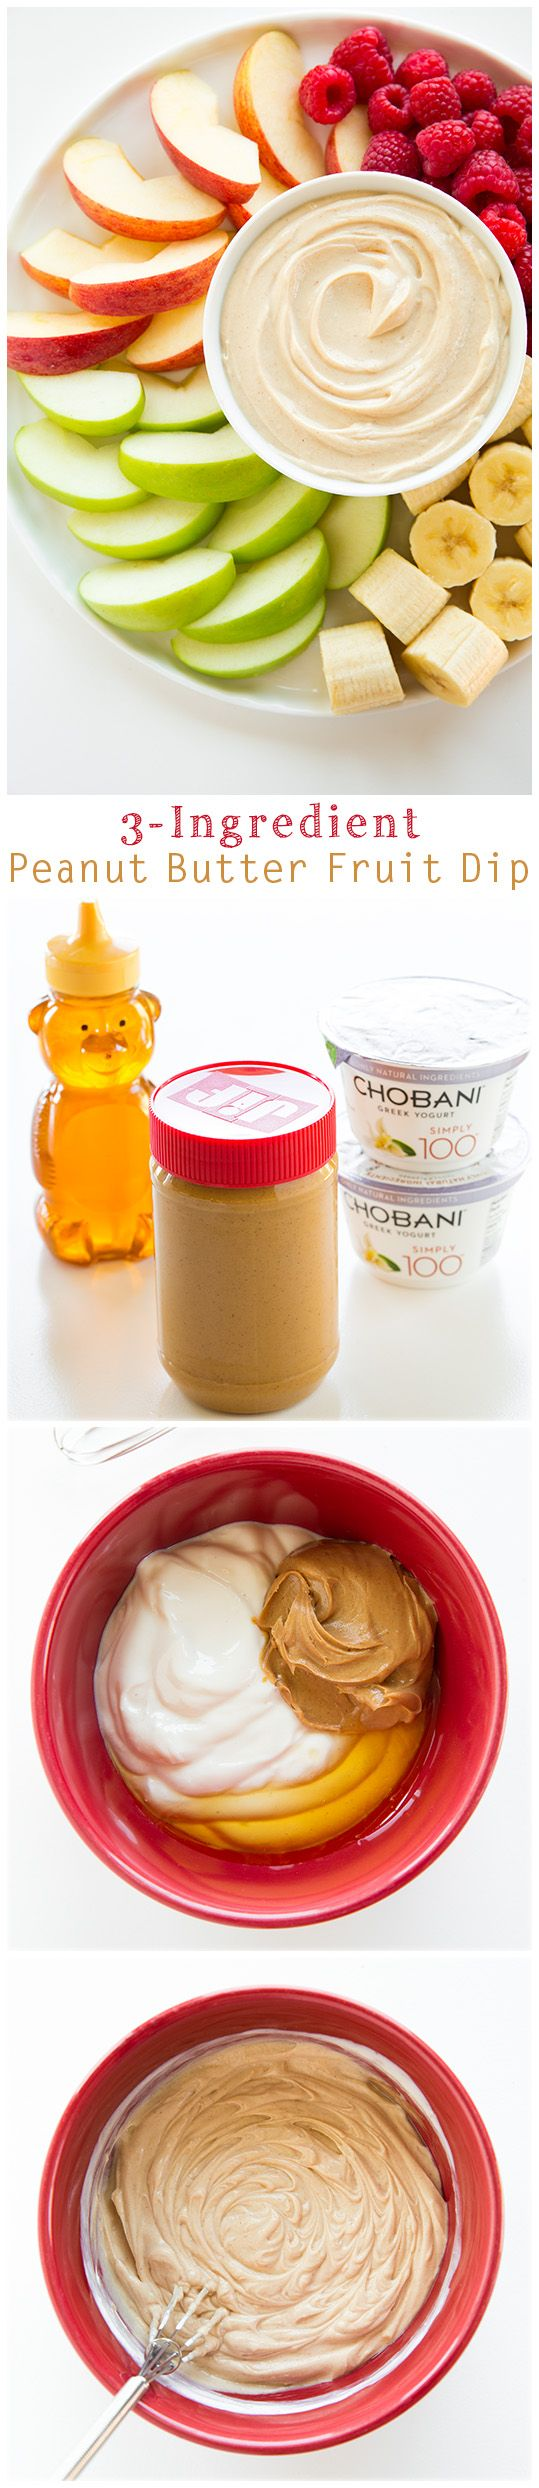 3 Ingredient Peanut Butter Fruit Dip